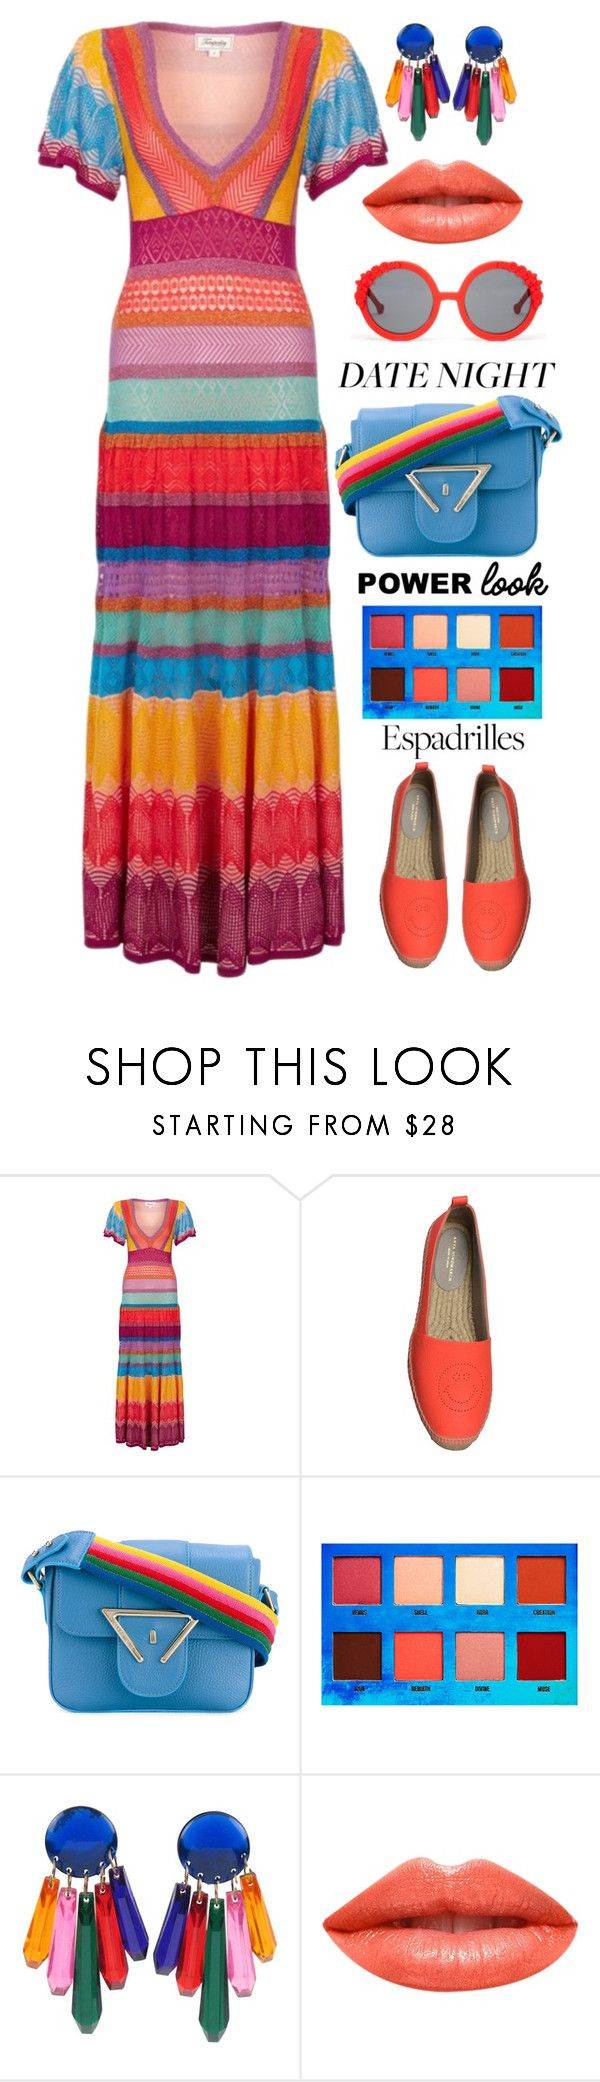 """Power Look"" by shoaleh-nia ❤ liked on Polyvore featuring Temperley London, Anya Hindmarch, Sara Battaglia, Lime Crime, Ardency Inn and Preen"